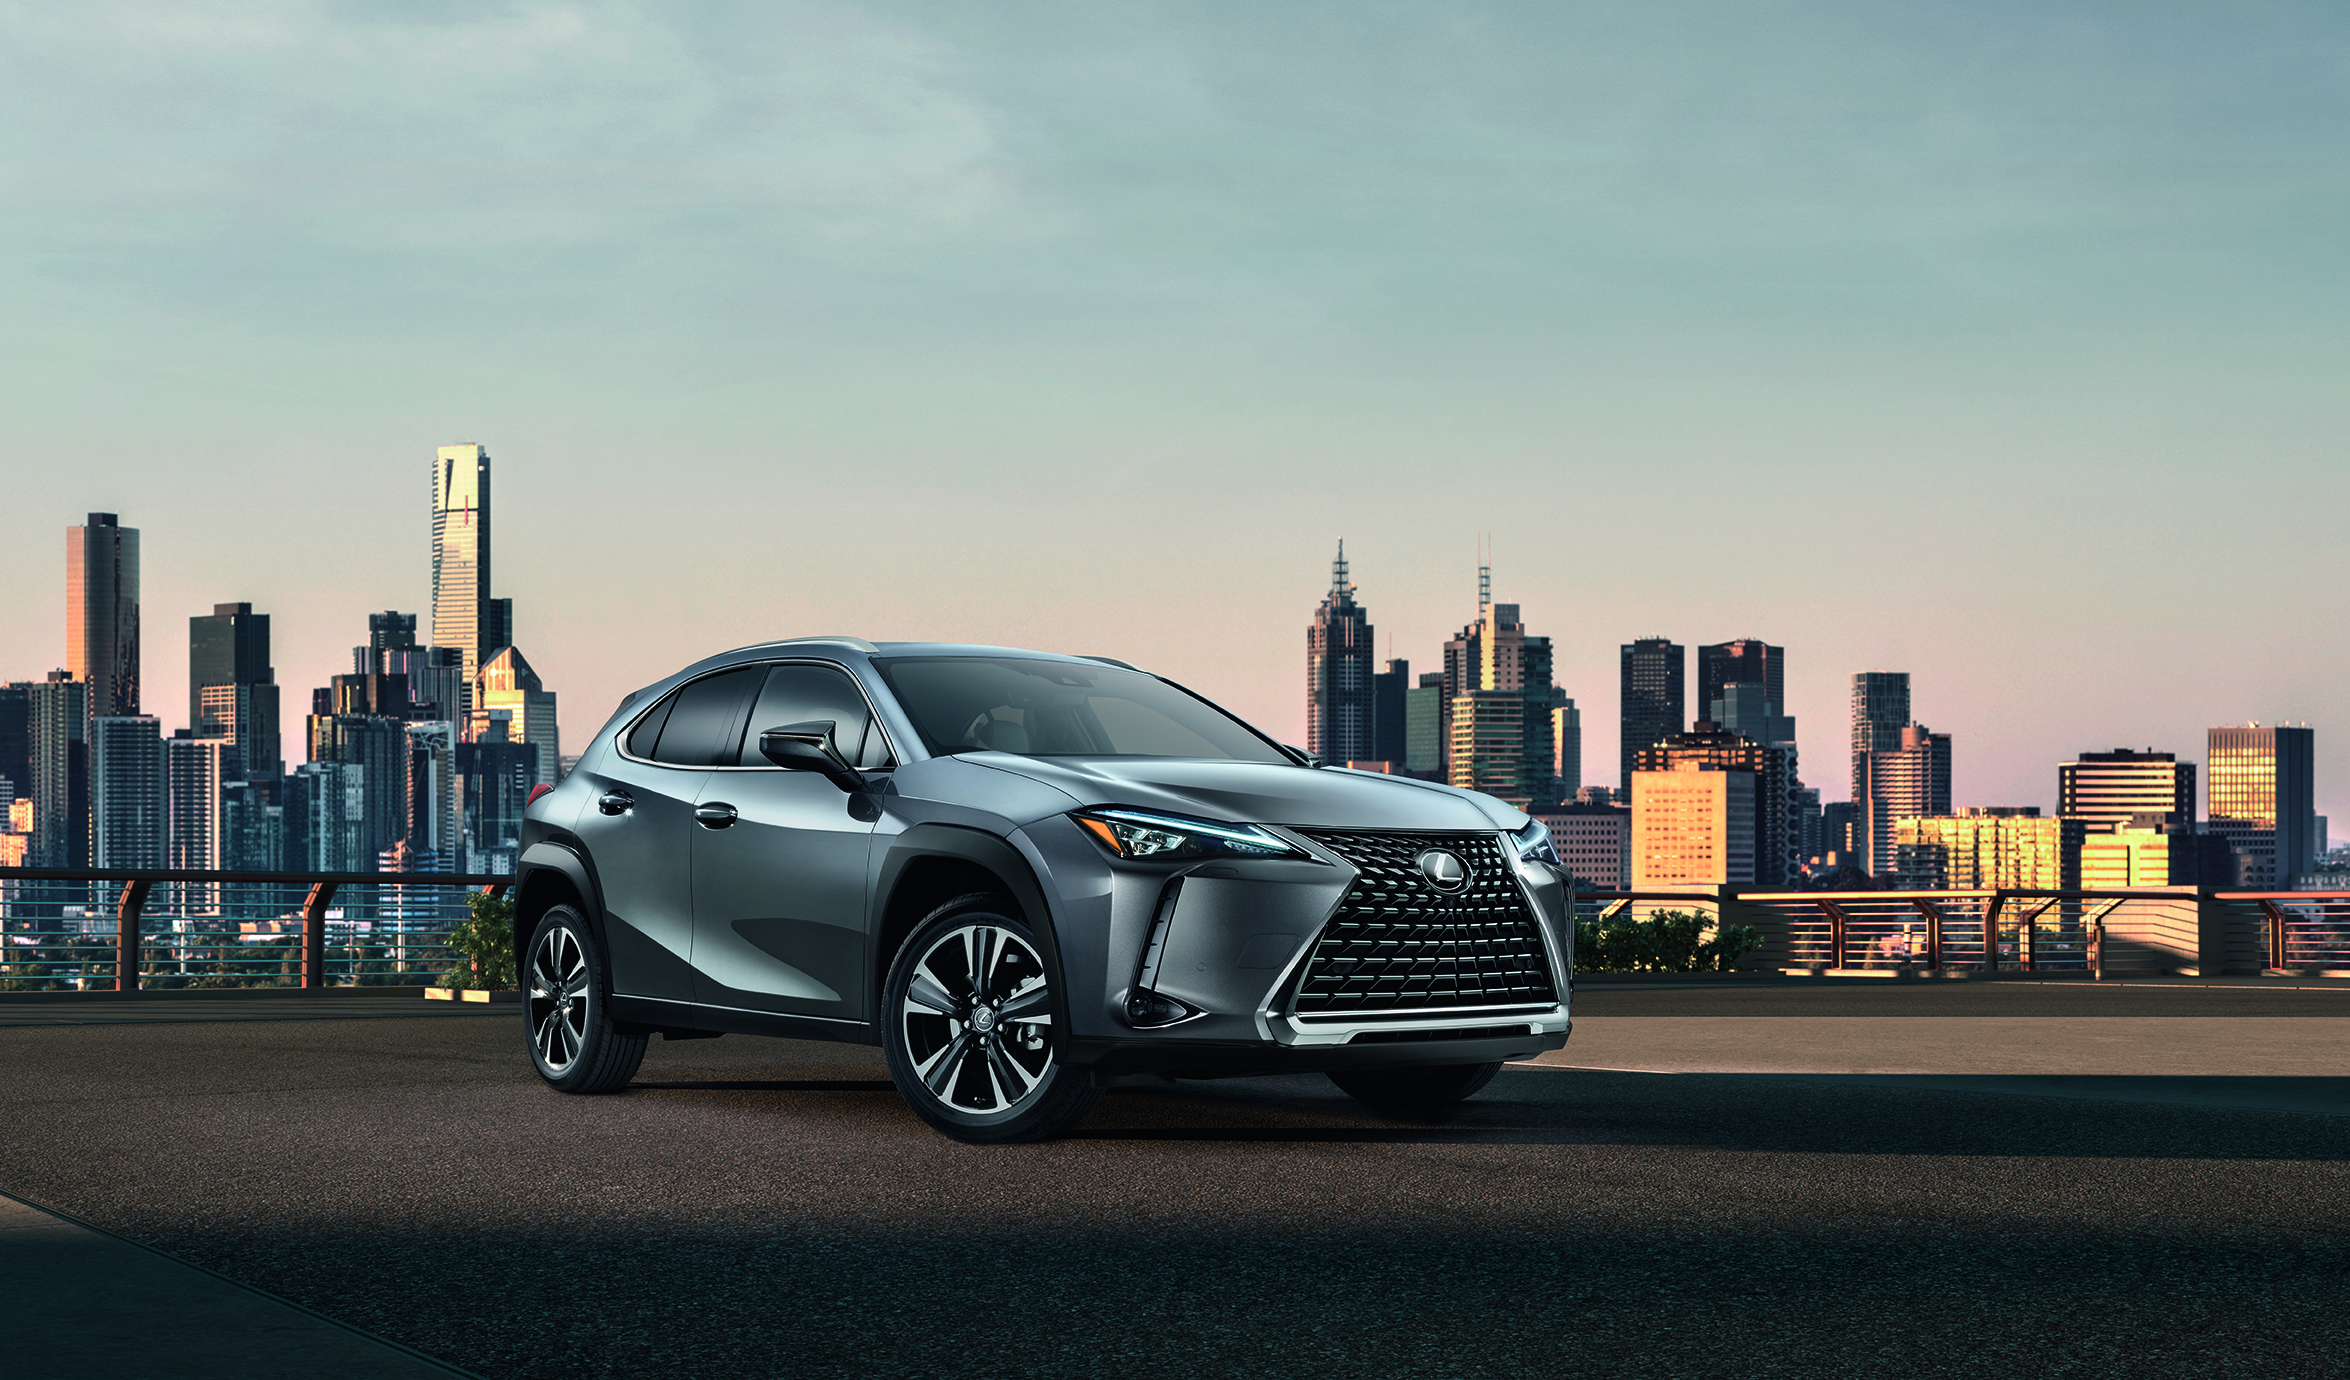 The Lexus UX is intended to attract new customers for the brand.